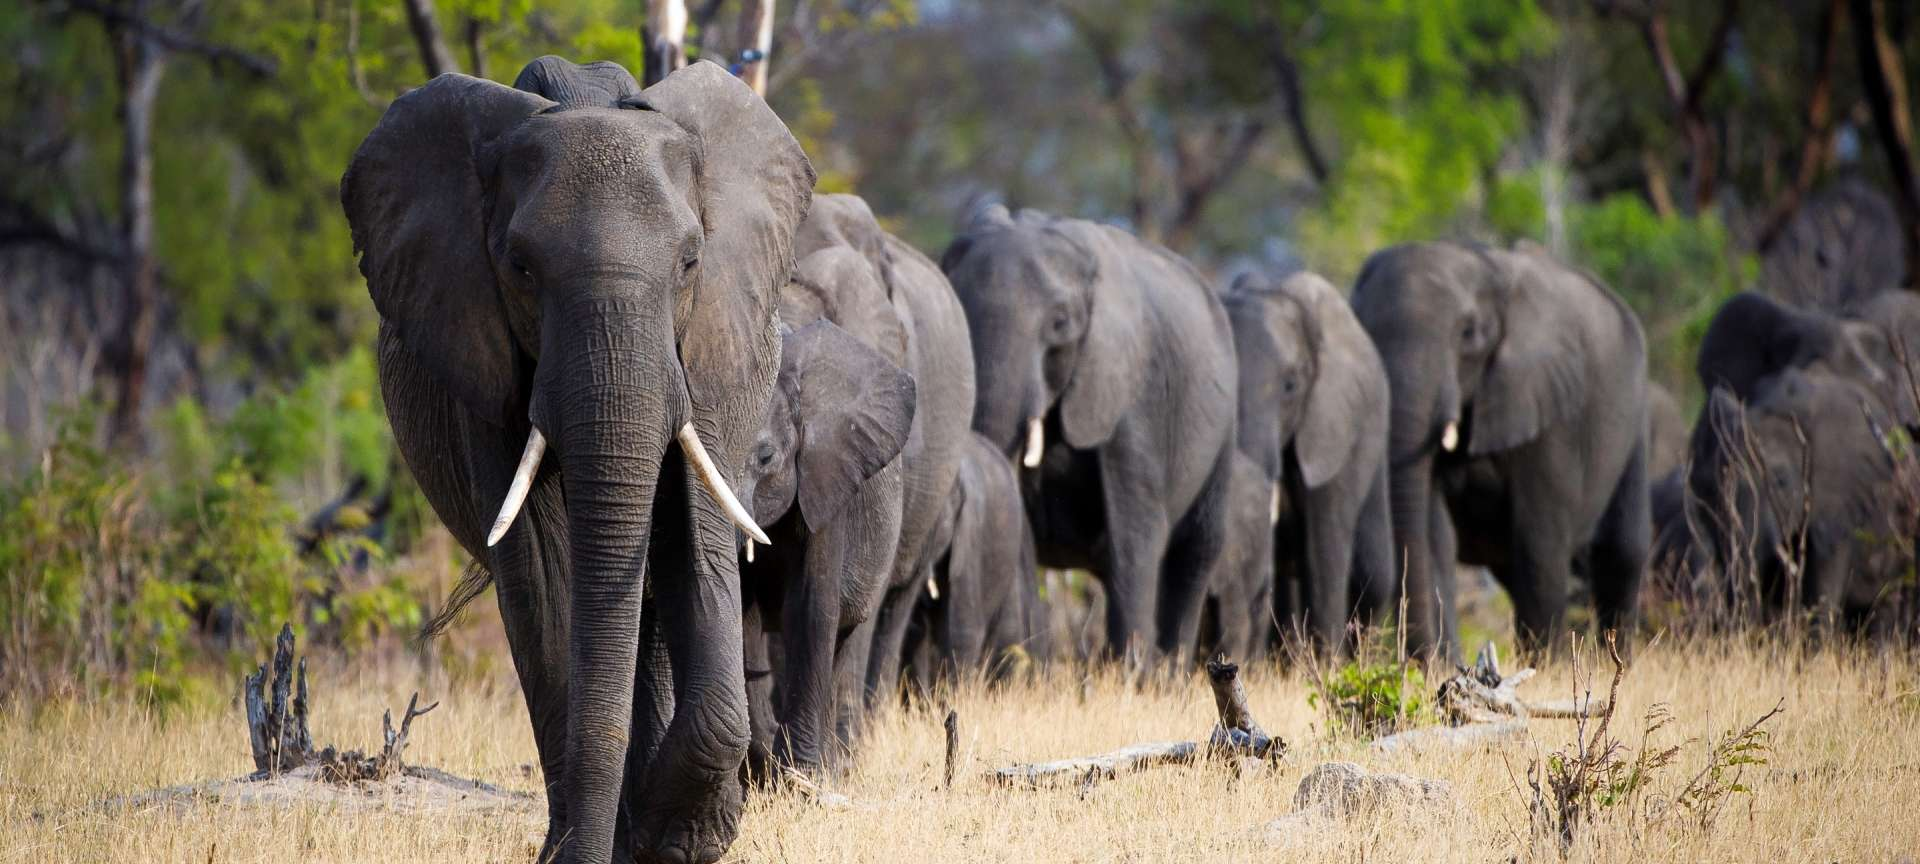 Hwange National Park - Africa Wildlife Safaris